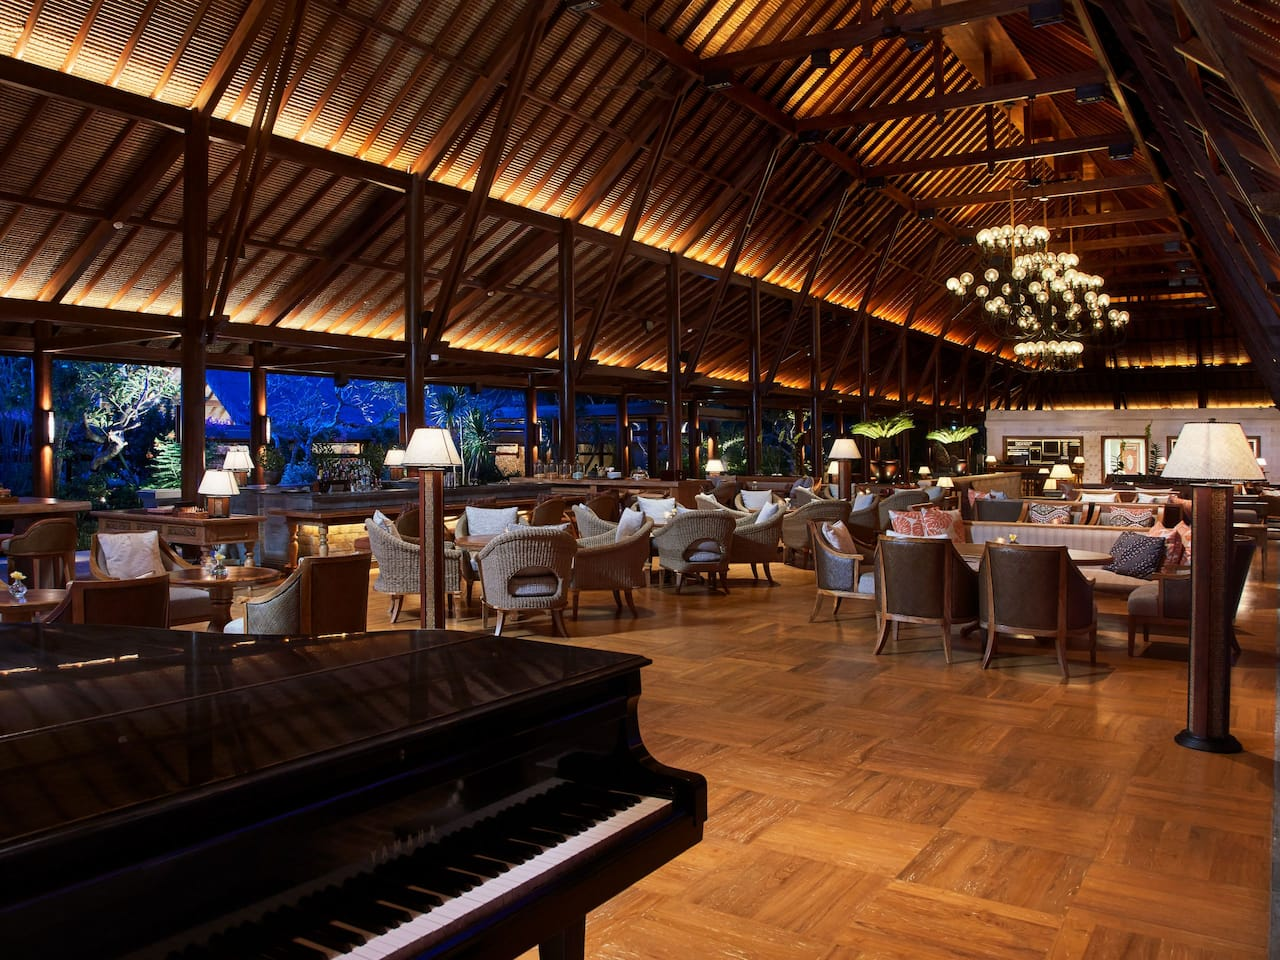 Pianists at Piano Lounge The Hyatt Regency Bali